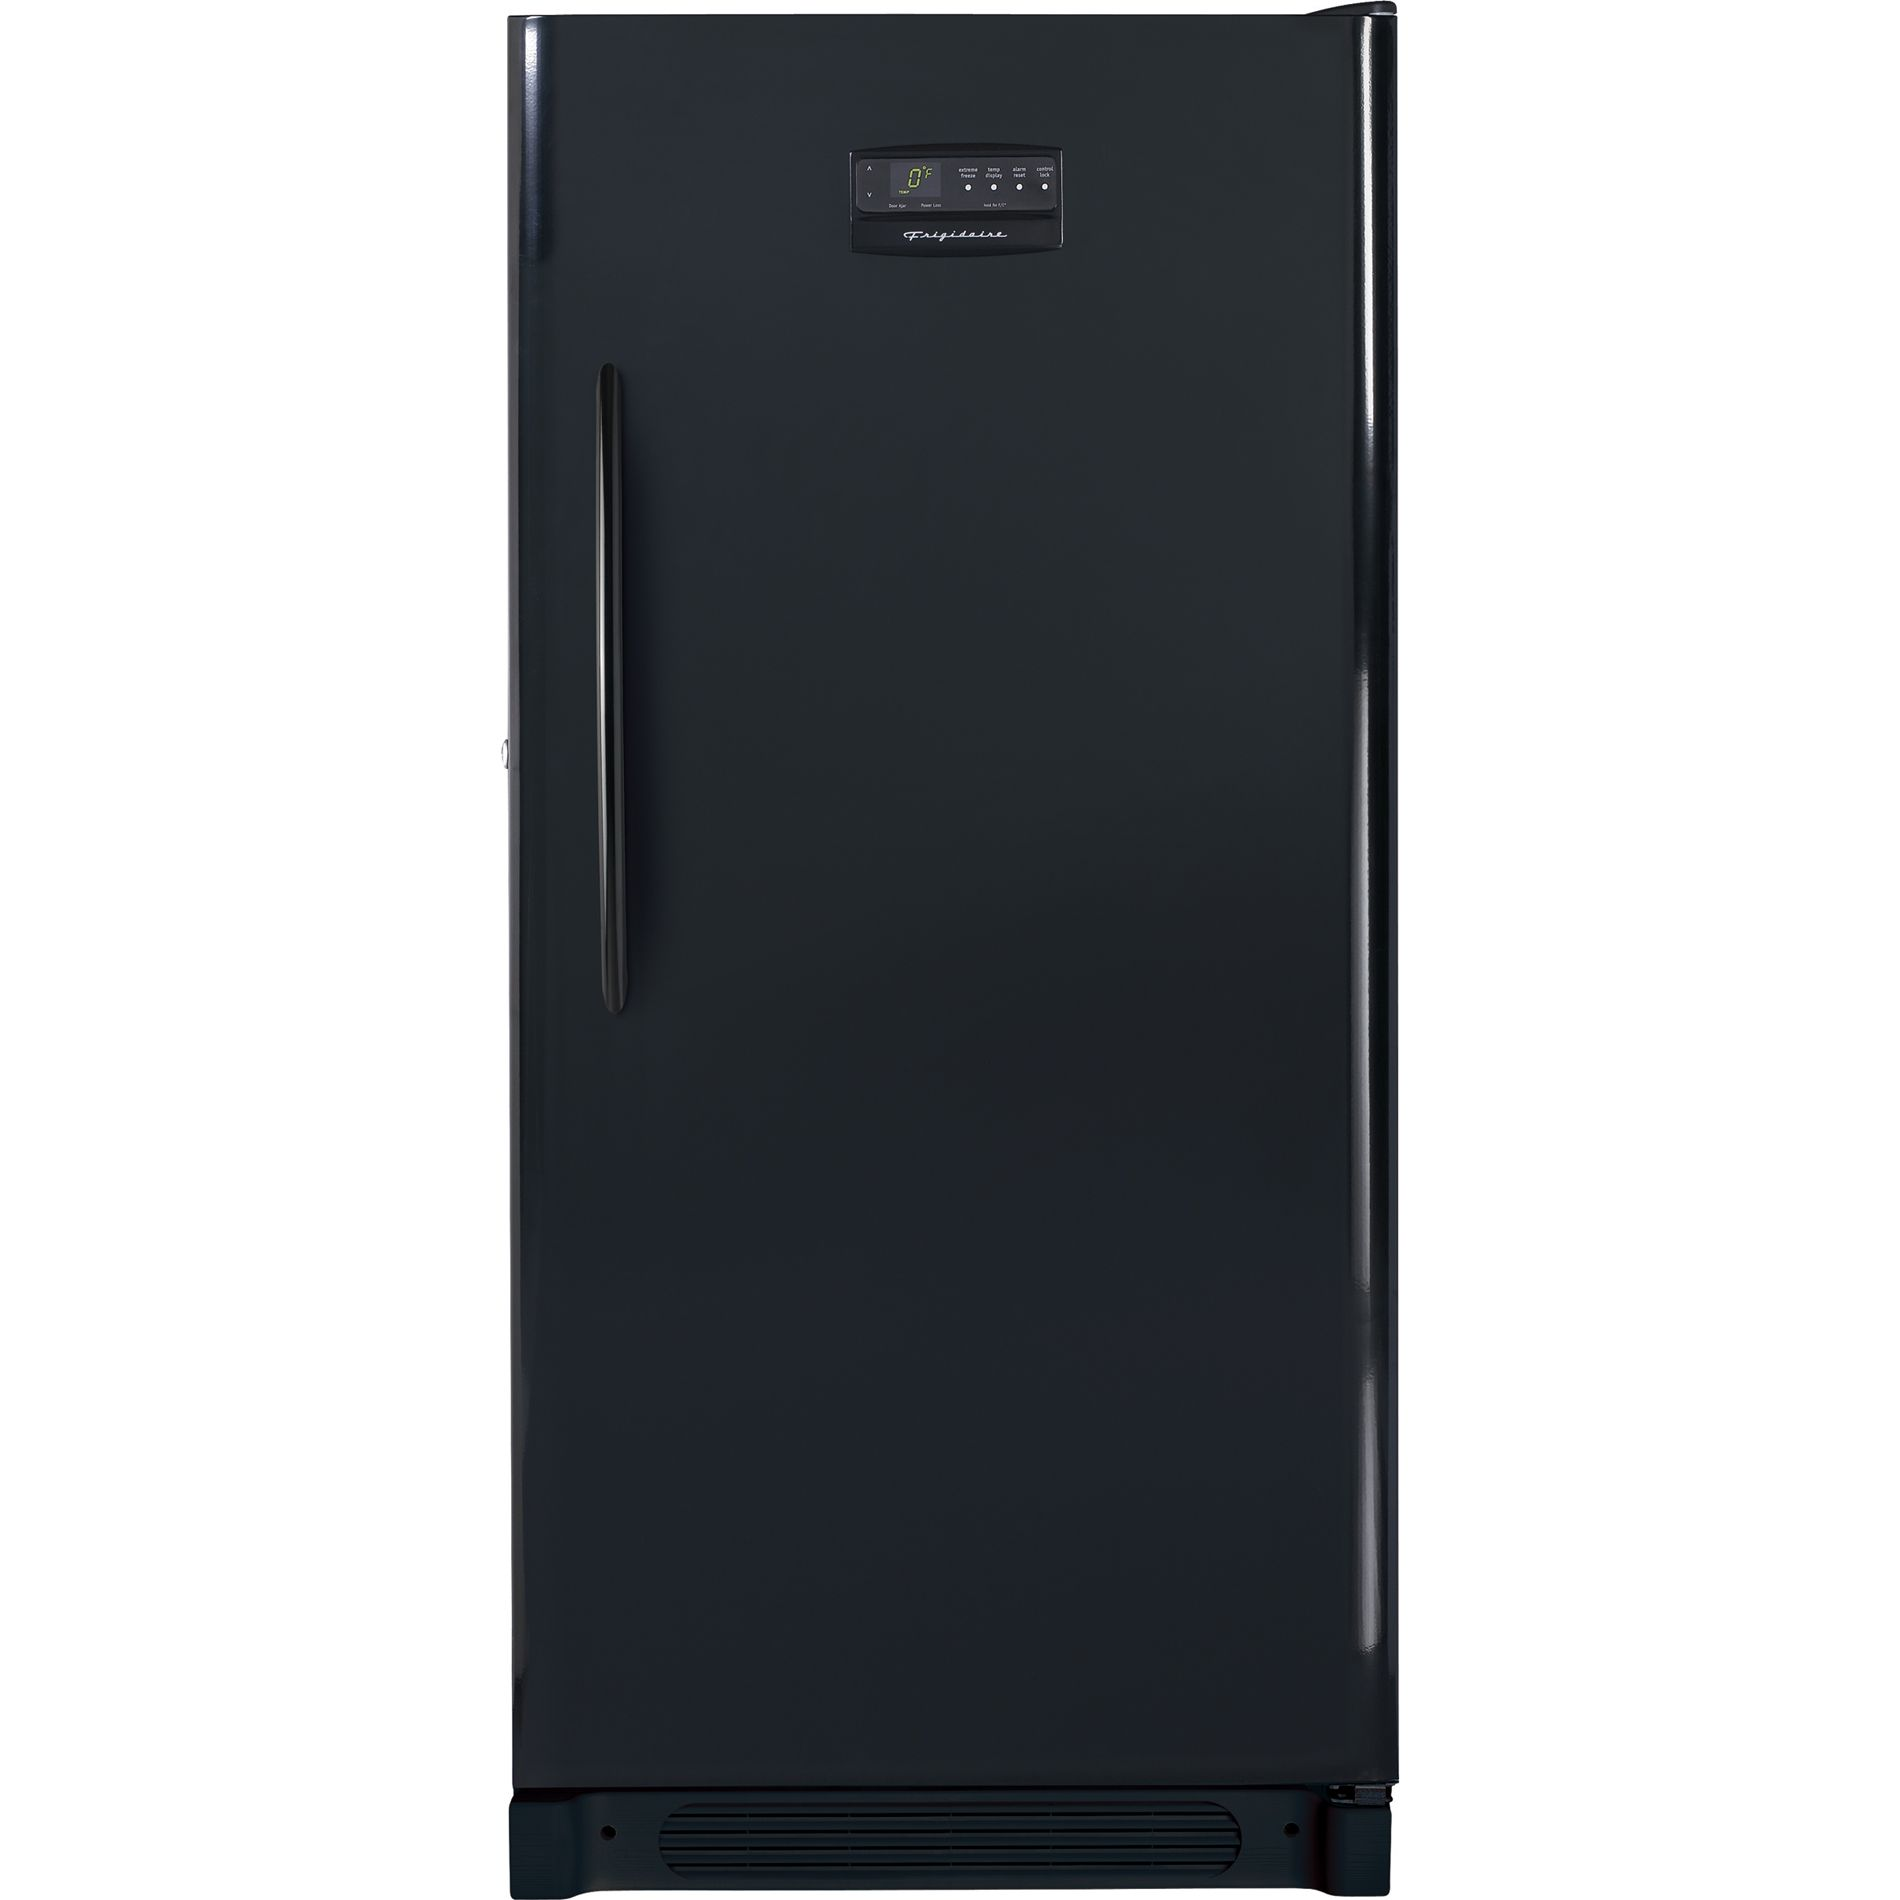 Kmart Freezer Frigidaire Upright Freezer 13 7 Cu Ft Ffu14f7hb Sears